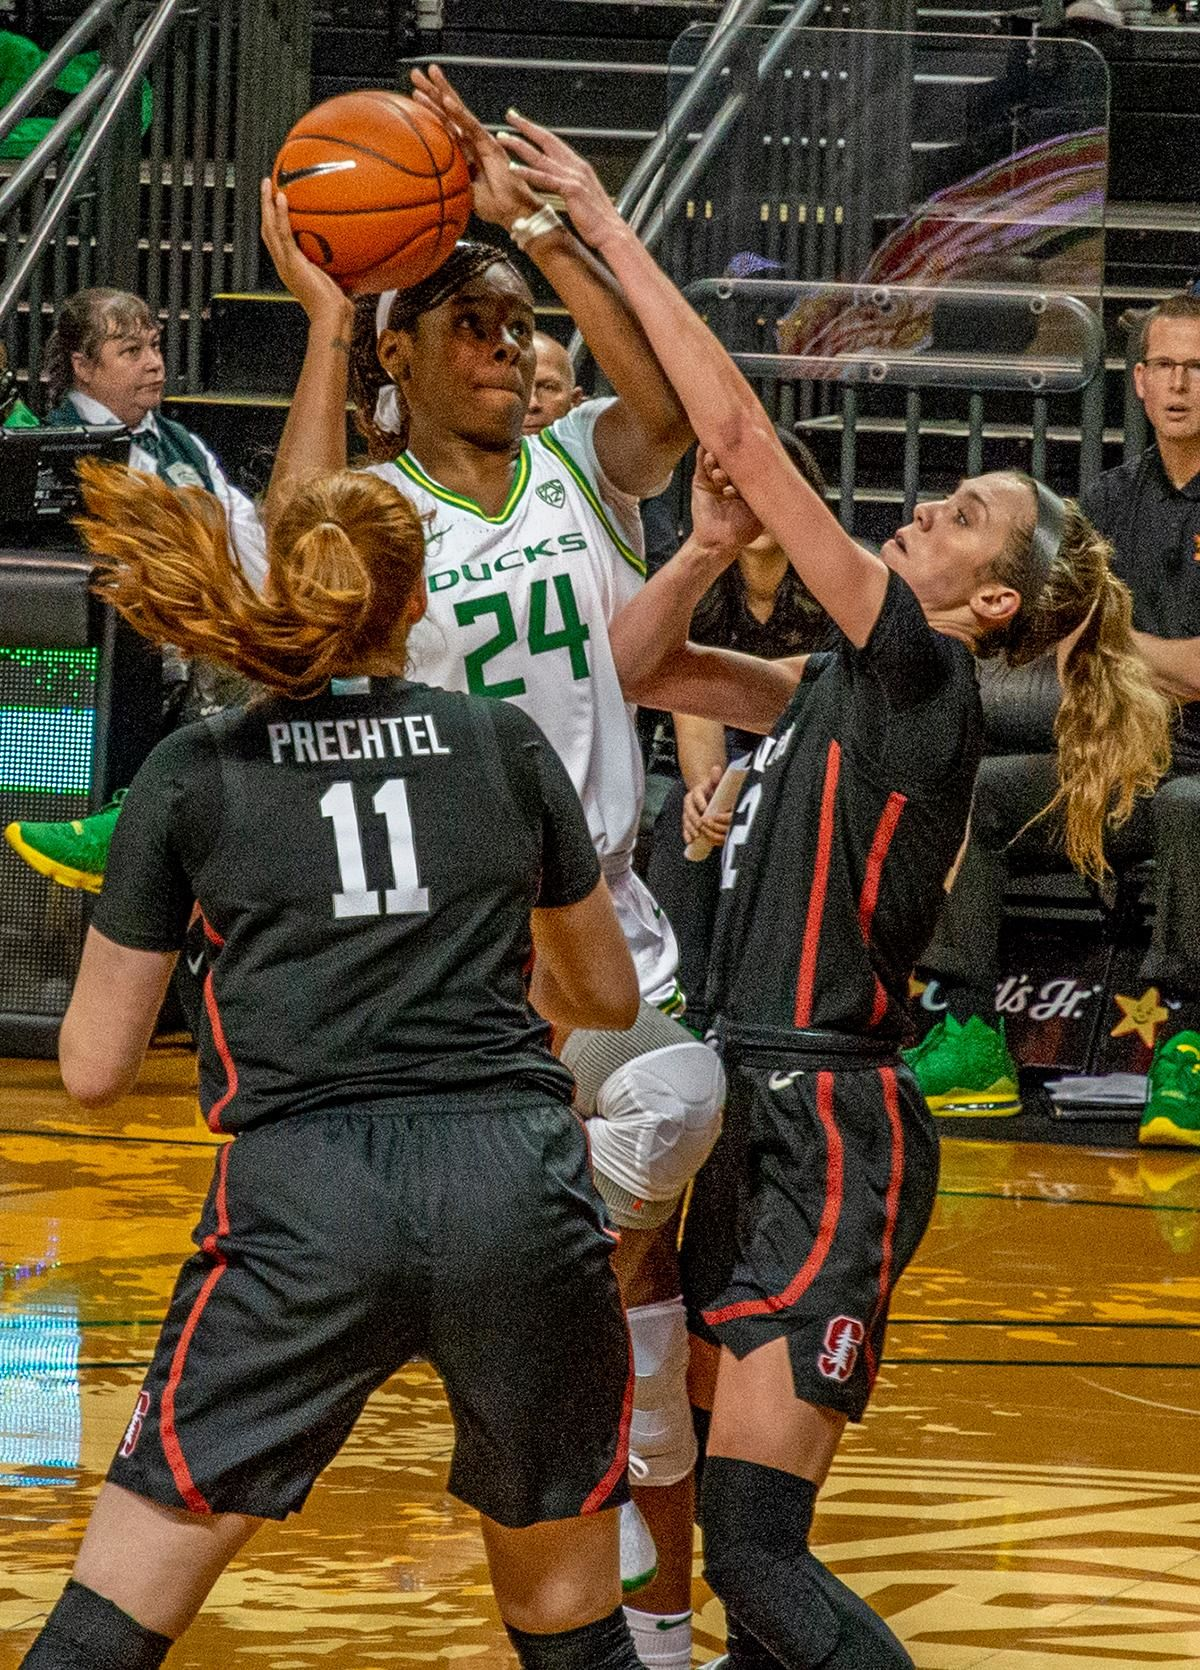 Oregon's forward Ruthy Hebard, #24, goes up strong for shoot attempt with Stanford's forwards Ashten Pretchel, #11, and Lexie Hull, #12, tightly defending. The #6 University of Oregon Ducks women's basketball team defeated #3 Stanford Cardinal 87-55 in front of a sold out crowd of 12, 218 fans in Matthew Knight Arena. Sabrina Ionescu broke the all-time Oregon scoring record of 2,253 and ended the game with 37 points, 11 rebounds, another double-double. Satou Sabally added 18 points and 11 rebounds, also a double-double. Ruthy Hebard put up 11 points with 5 rebounds, and Minyon Moore added 10 points 3 rebounds. The Ducks next face off against Cal on Sunday, January 19, at 2 pm in Matthew Knight Arena. Photo by Jeffrey Price